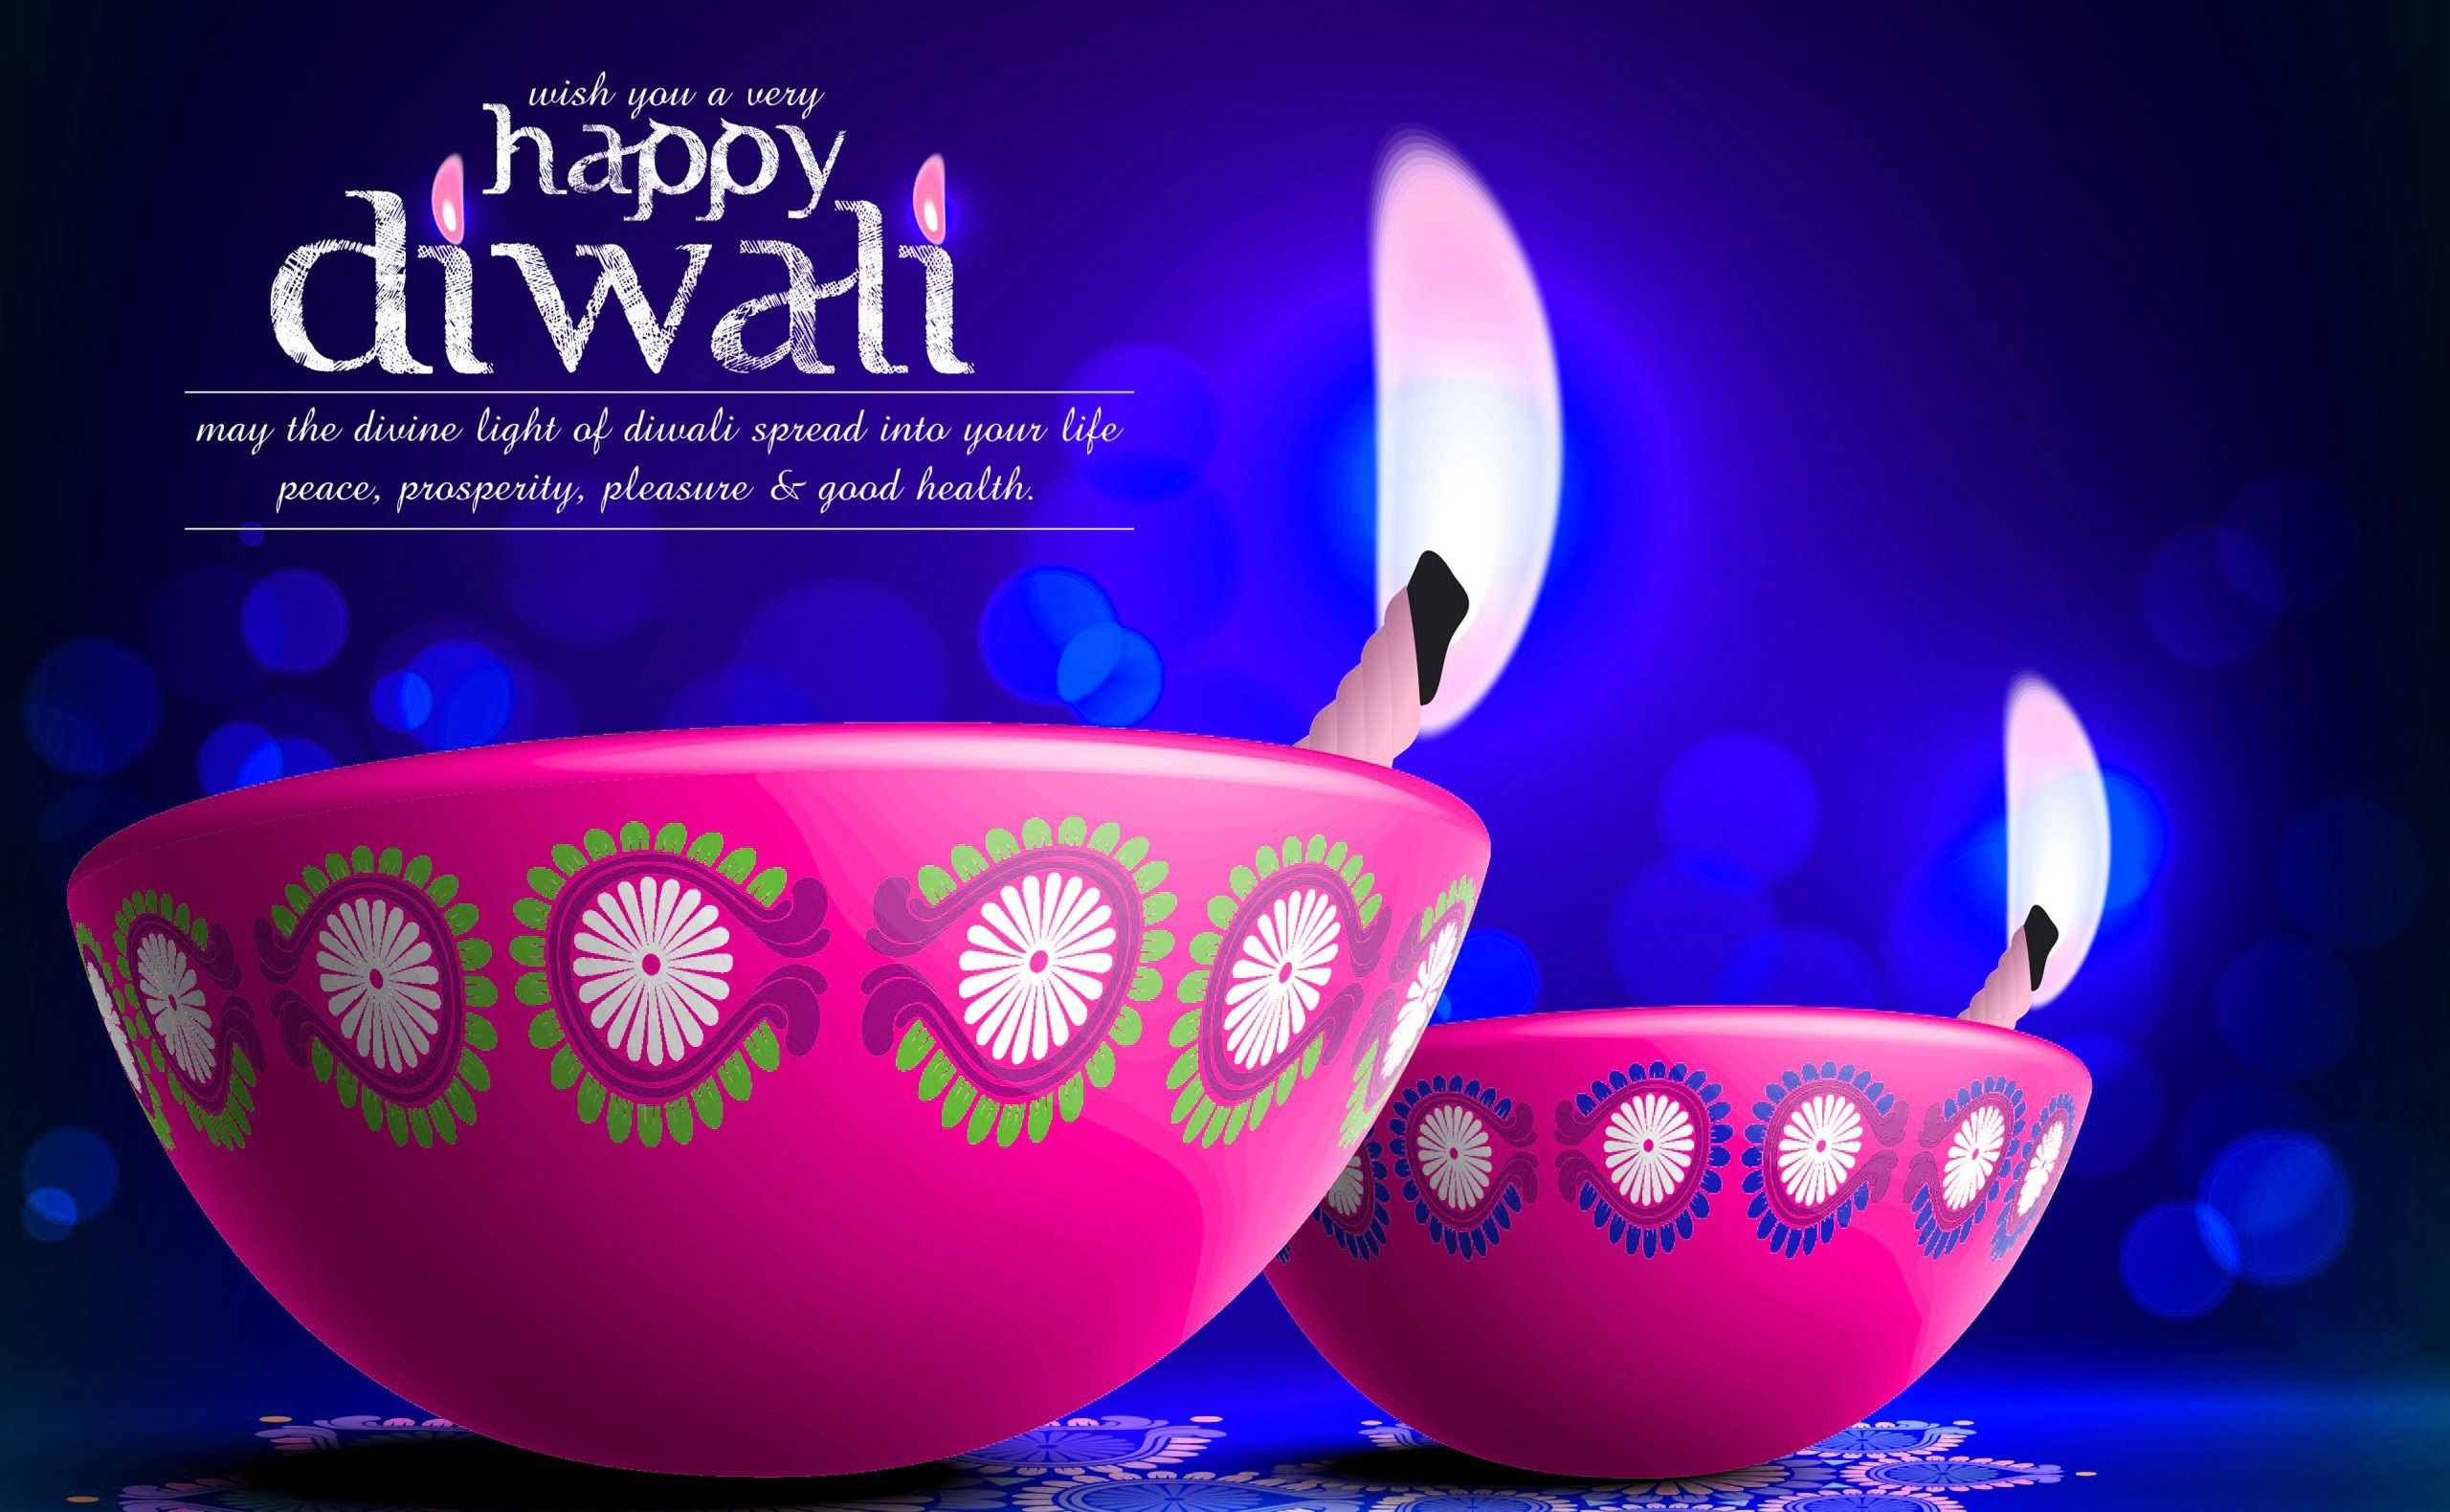 diwali wallpaper for pc mobile desktop background download free